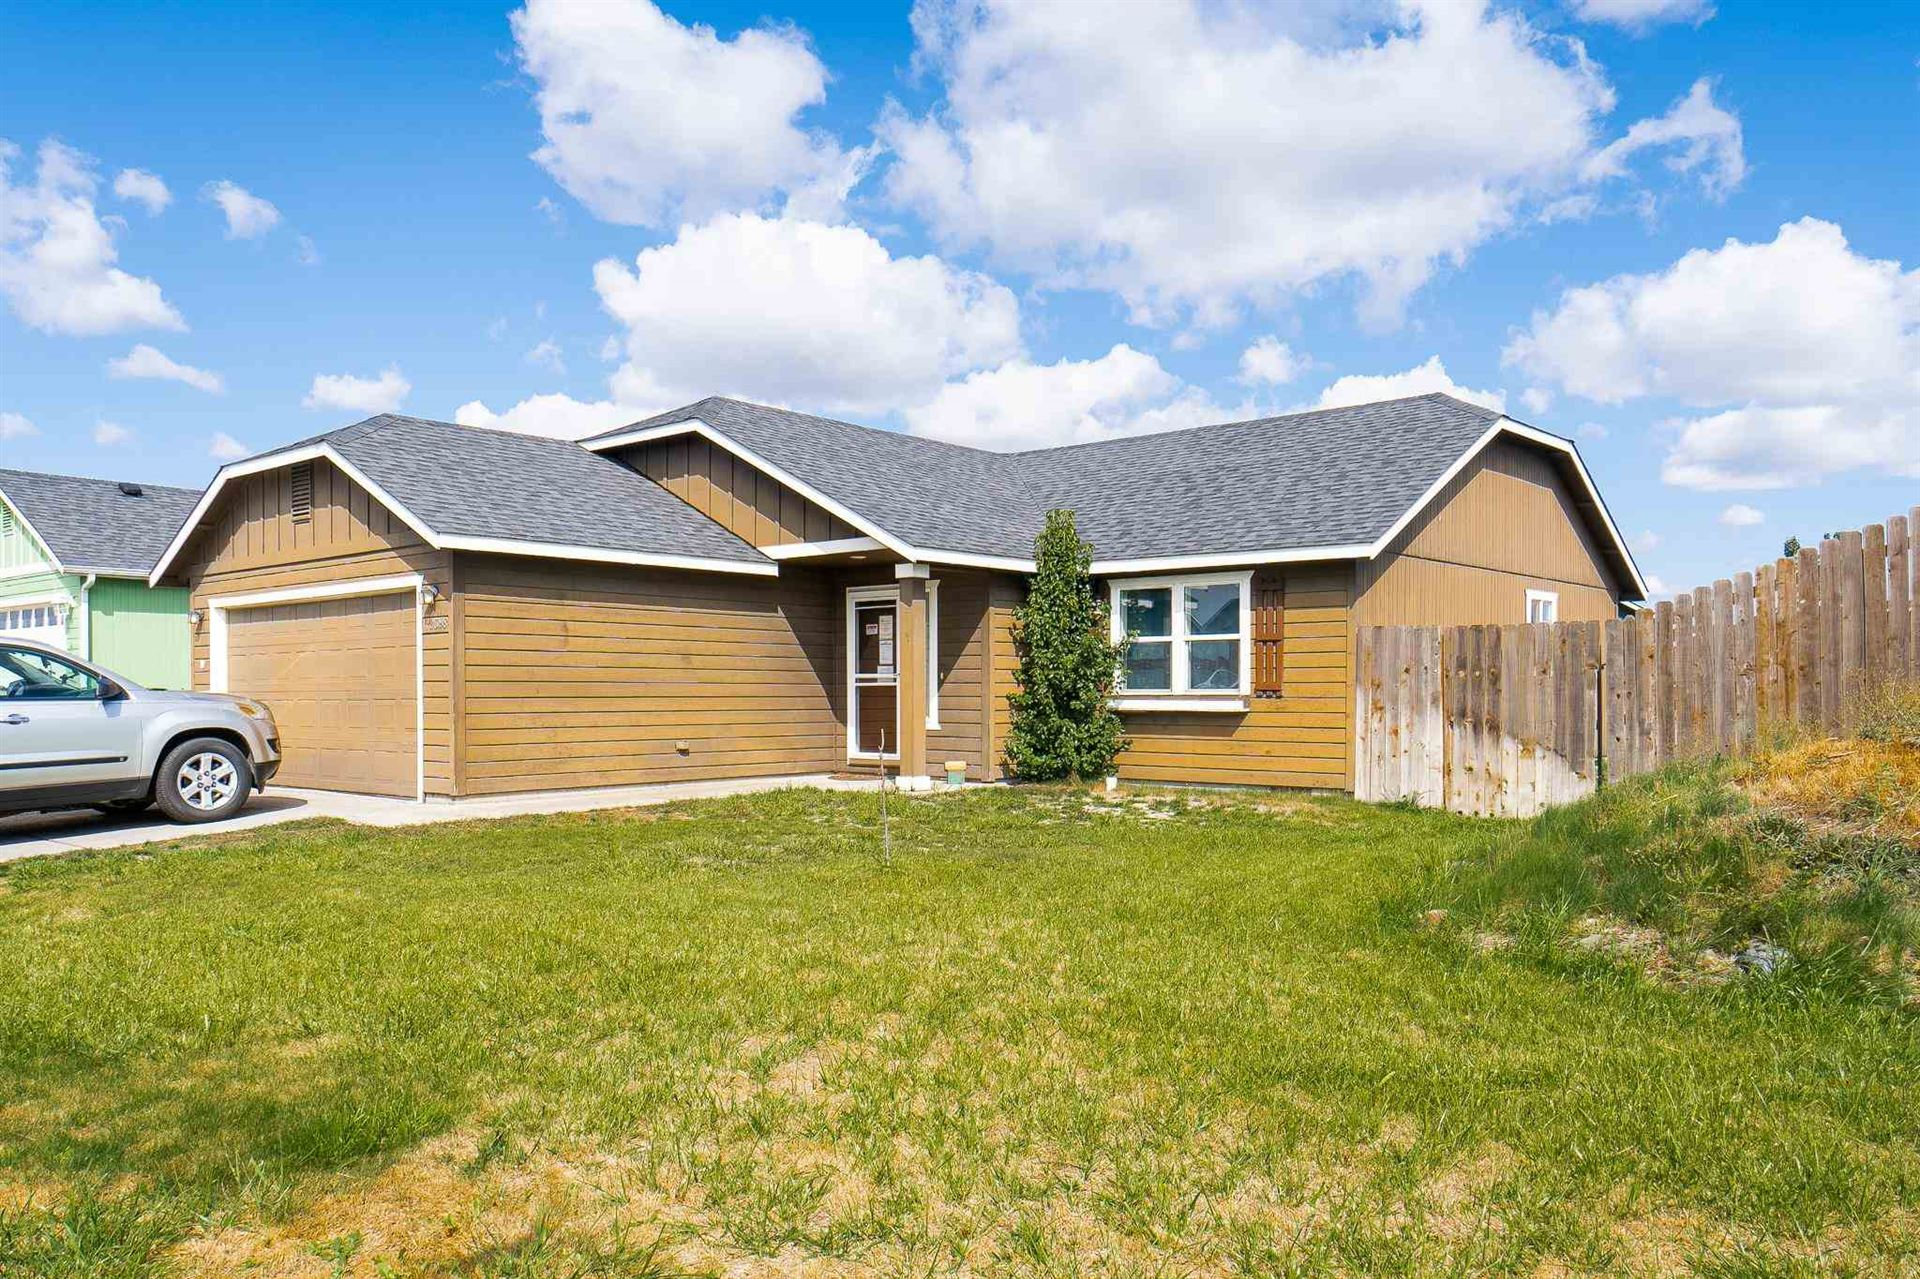 12398 W 2nd Ave, Airway Heights, WA 99001 - #: 202121691